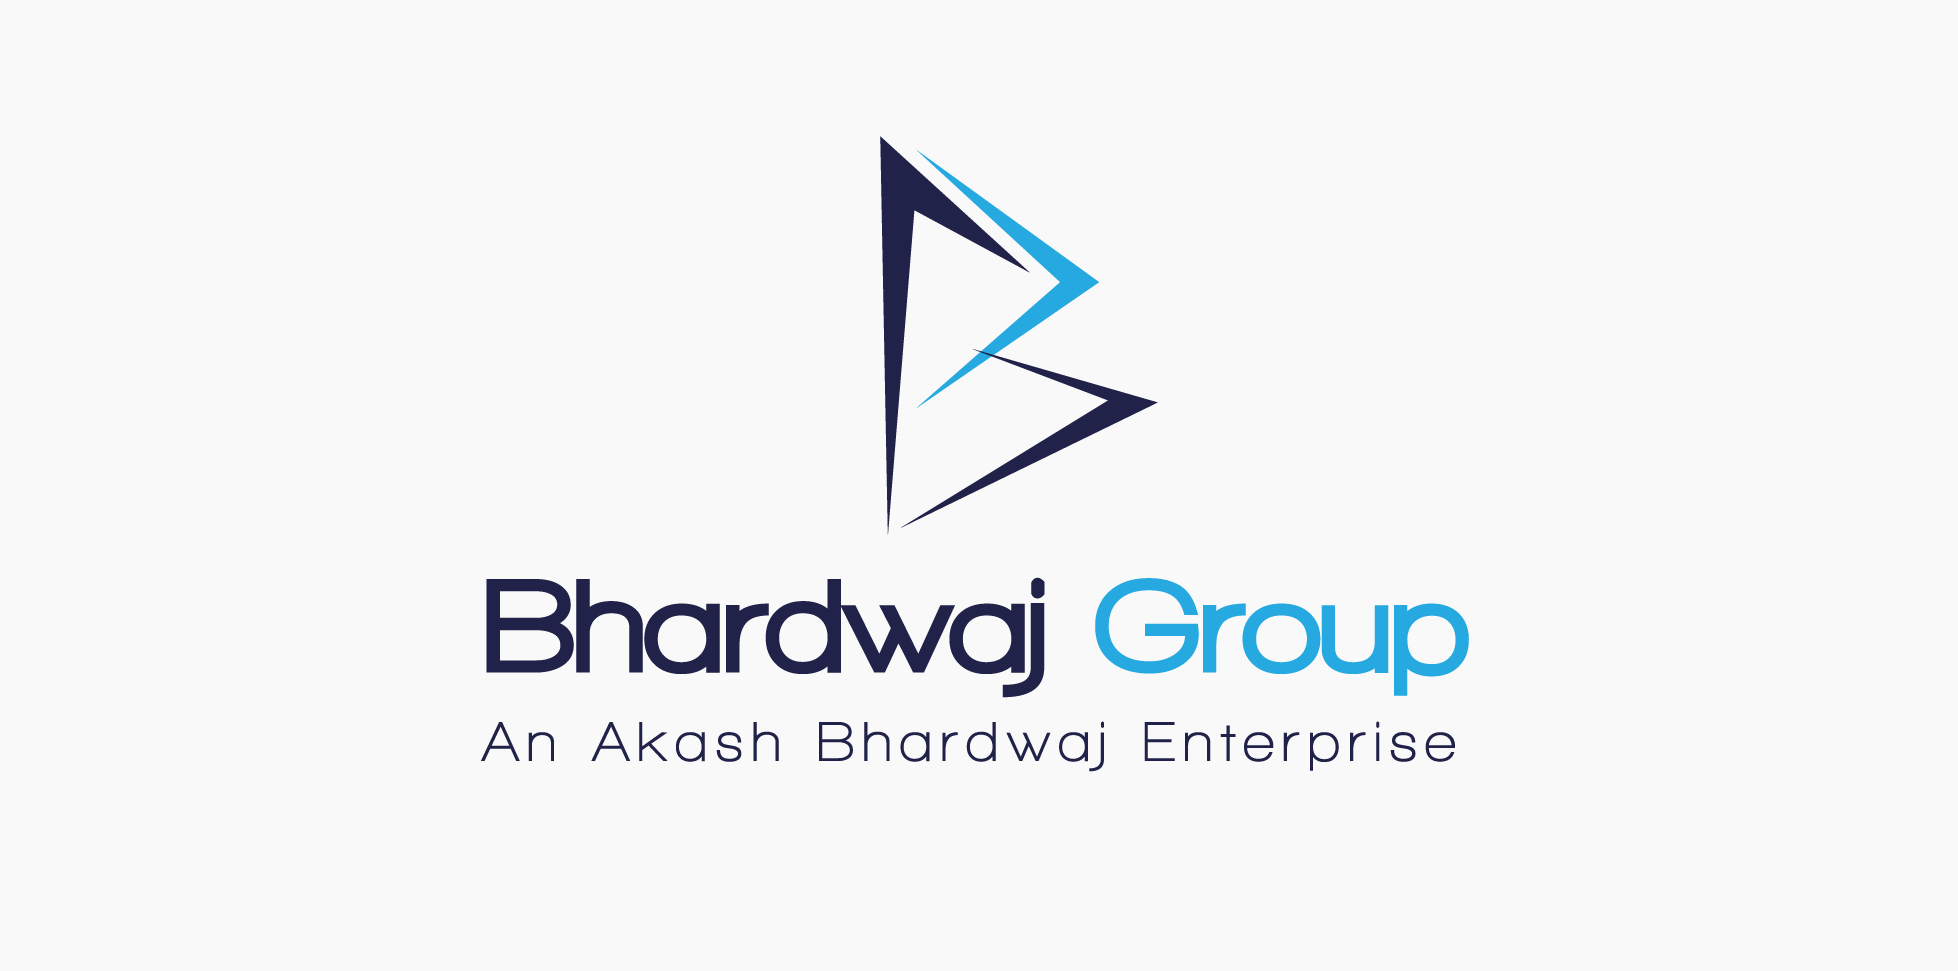 Bhardwaj Group